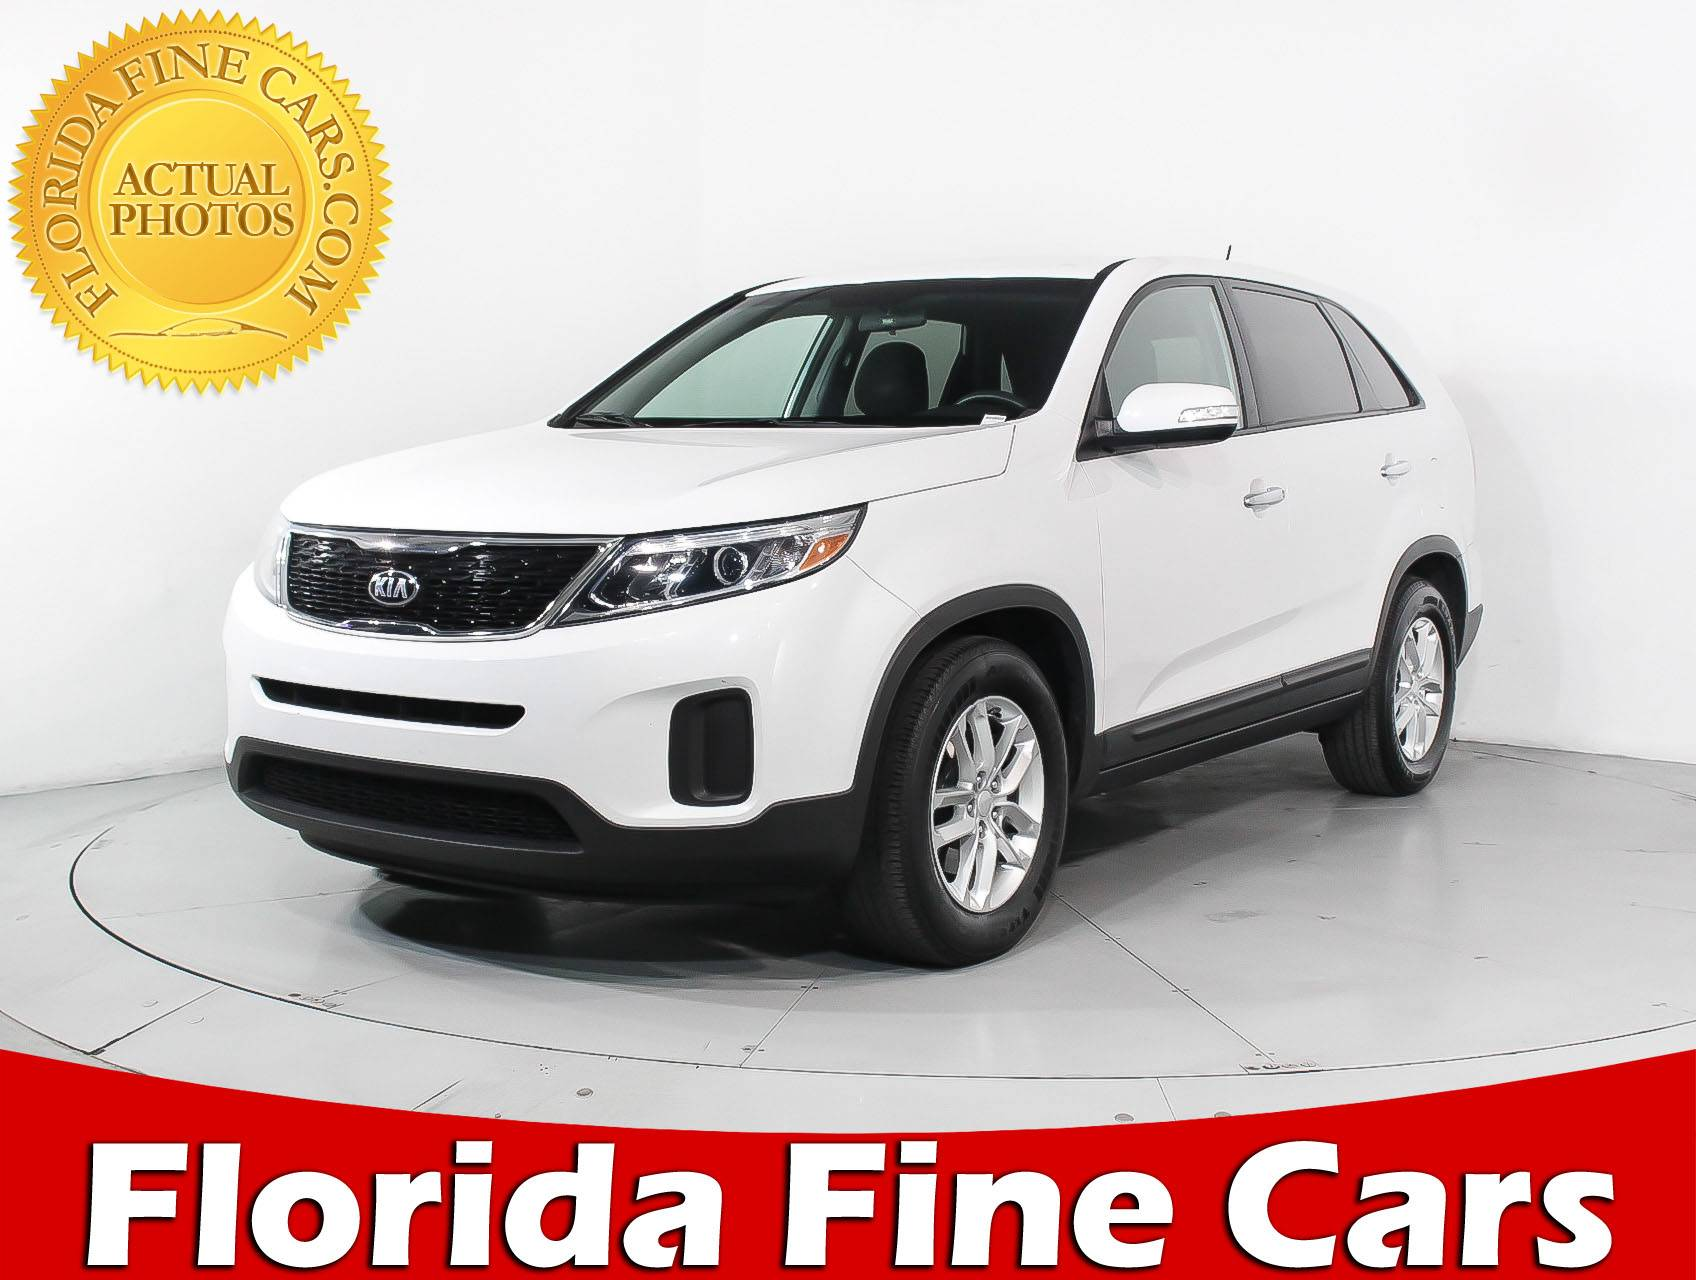 Used 2015 KIA SORENTO LX SUV for sale in MIAMI FL